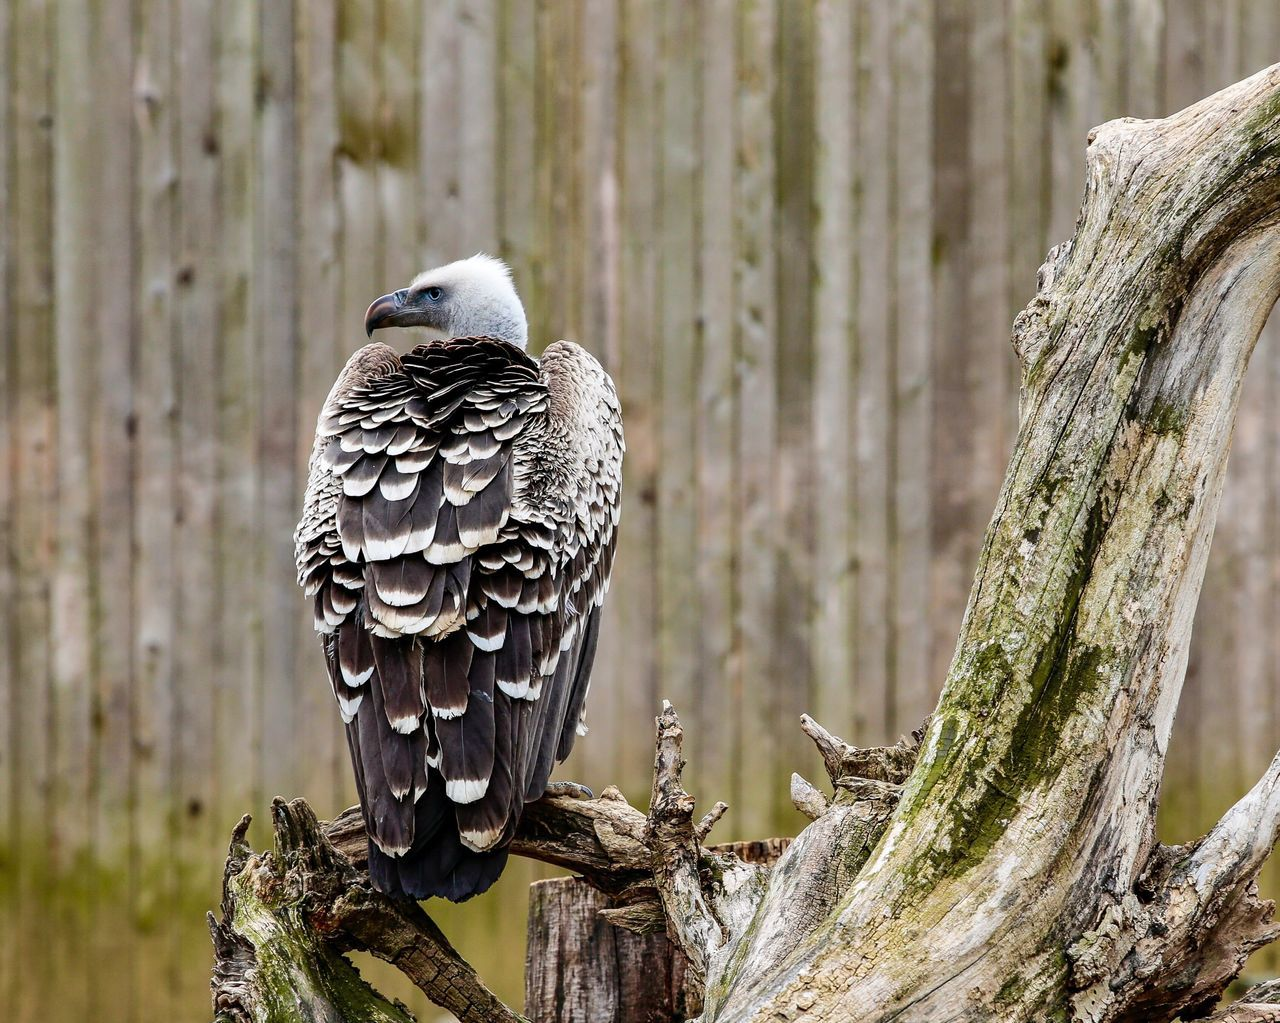 One Animal Bird Of Prey Animals In The Wild Animal Themes Bird Tree Animal Wildlife Perching Tree Trunk Branch Day Outdoors Nature No People Owl Close-up JGLowe Beauty In Nature Stare